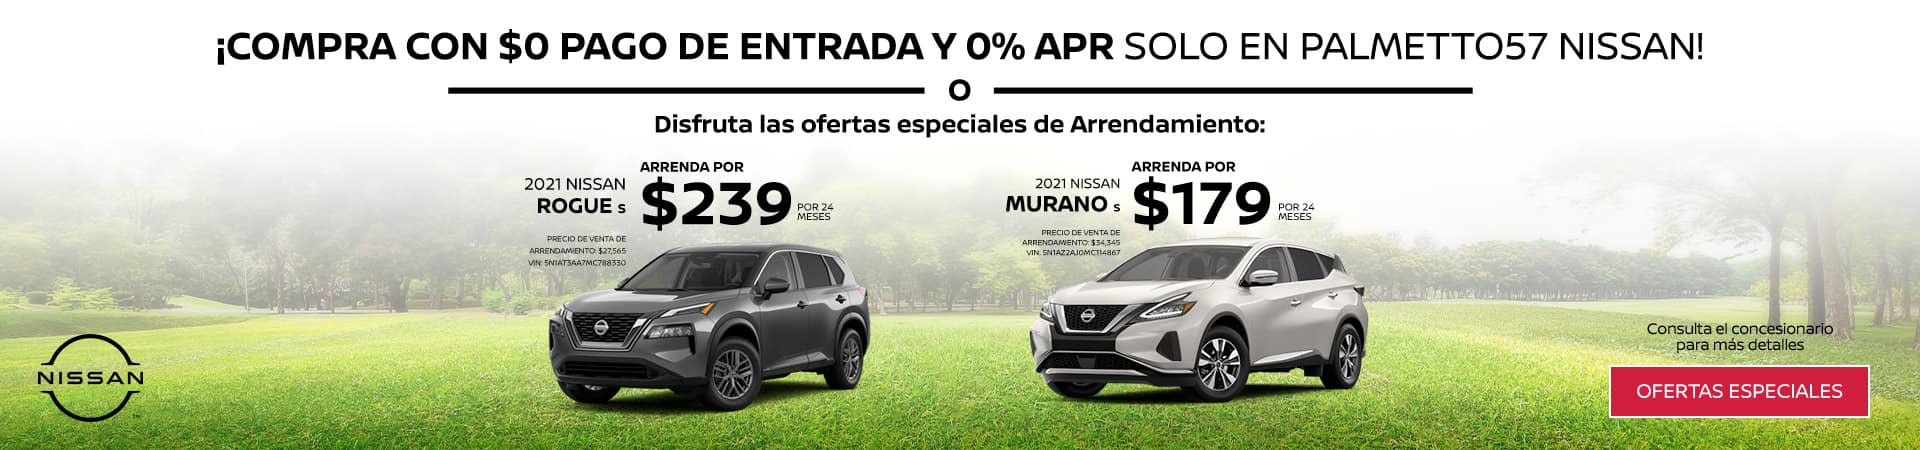 Rogue and Murano Specials